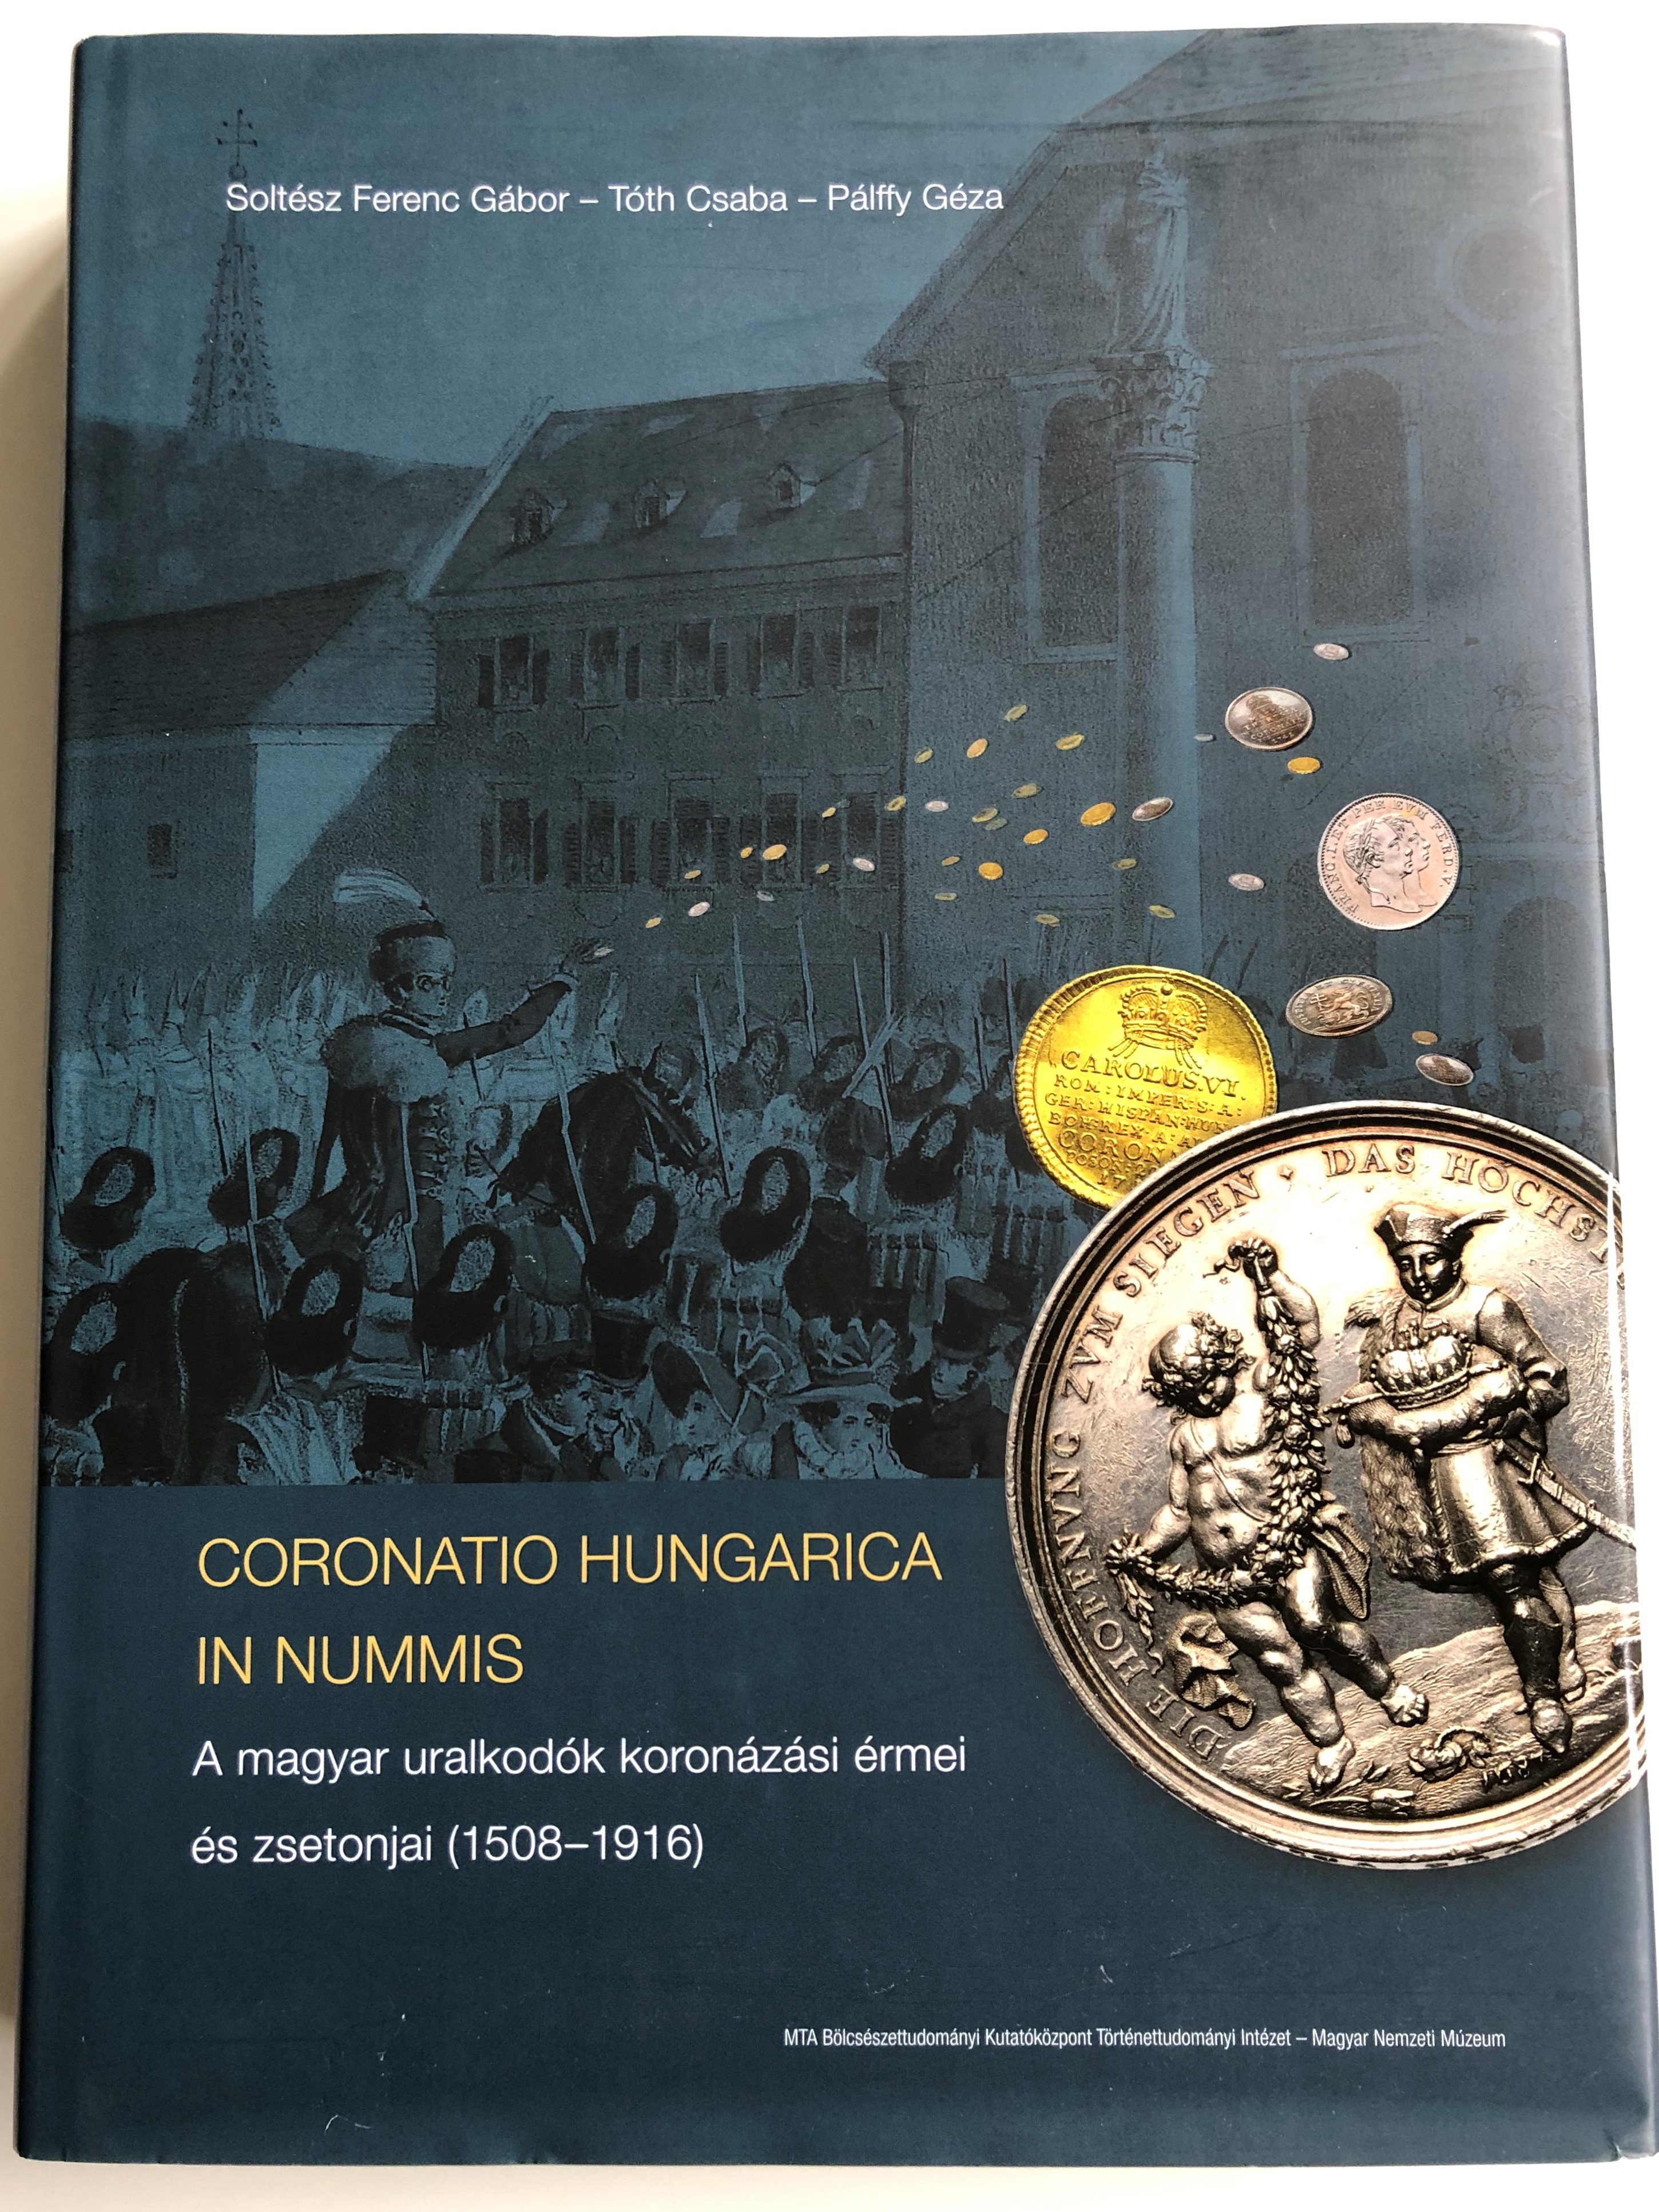 -catalog-of-hungarian-coins-of-rulers-from-1508-1916-coronatio-hungarica-in-nummis-1.jpg